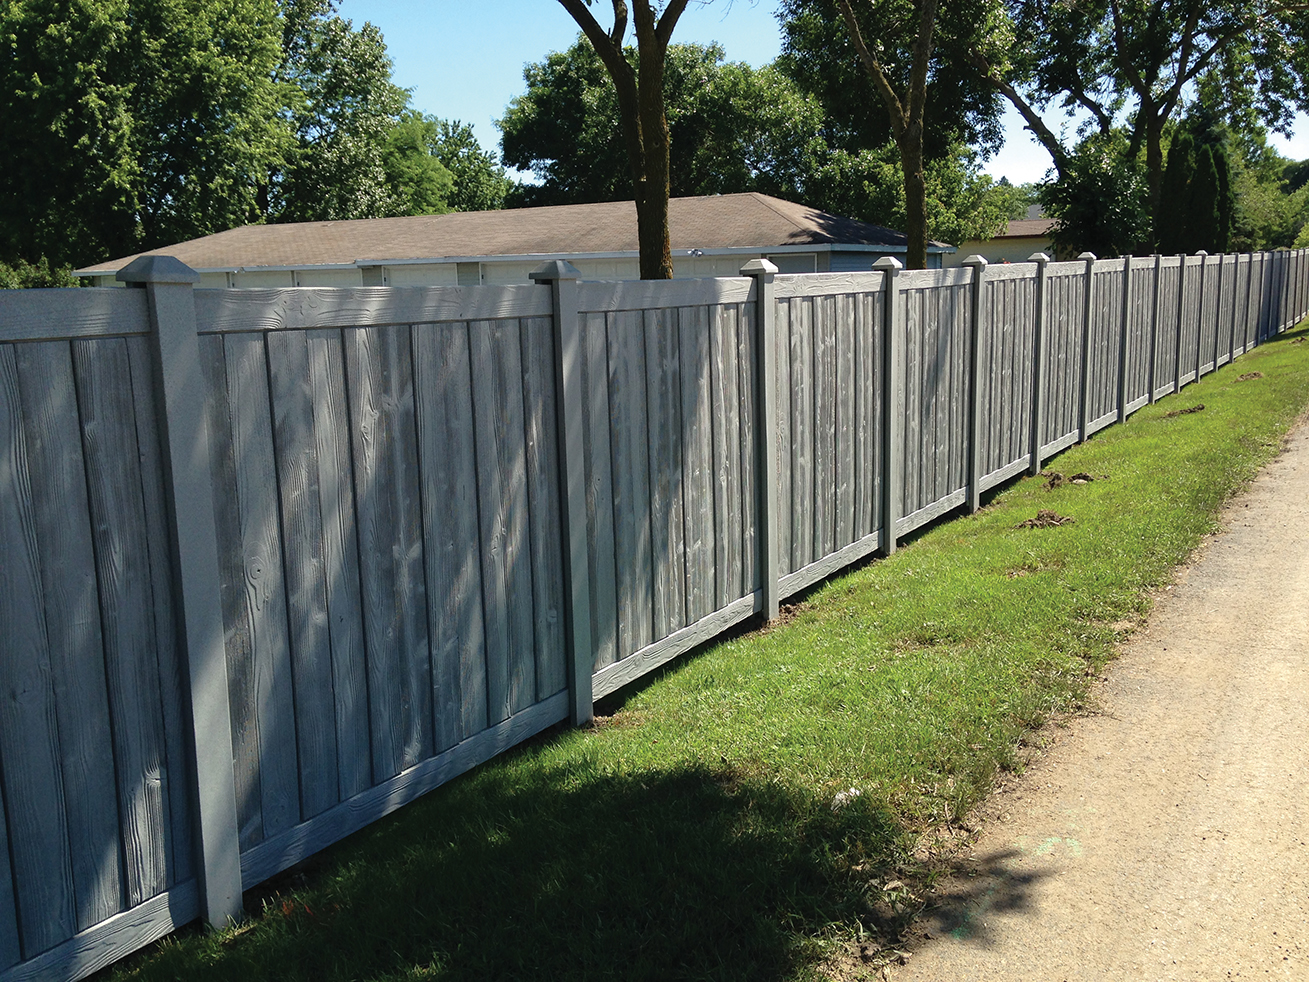 CertainTeed Fence   GNG Vinyl Fencing and Patio Covers